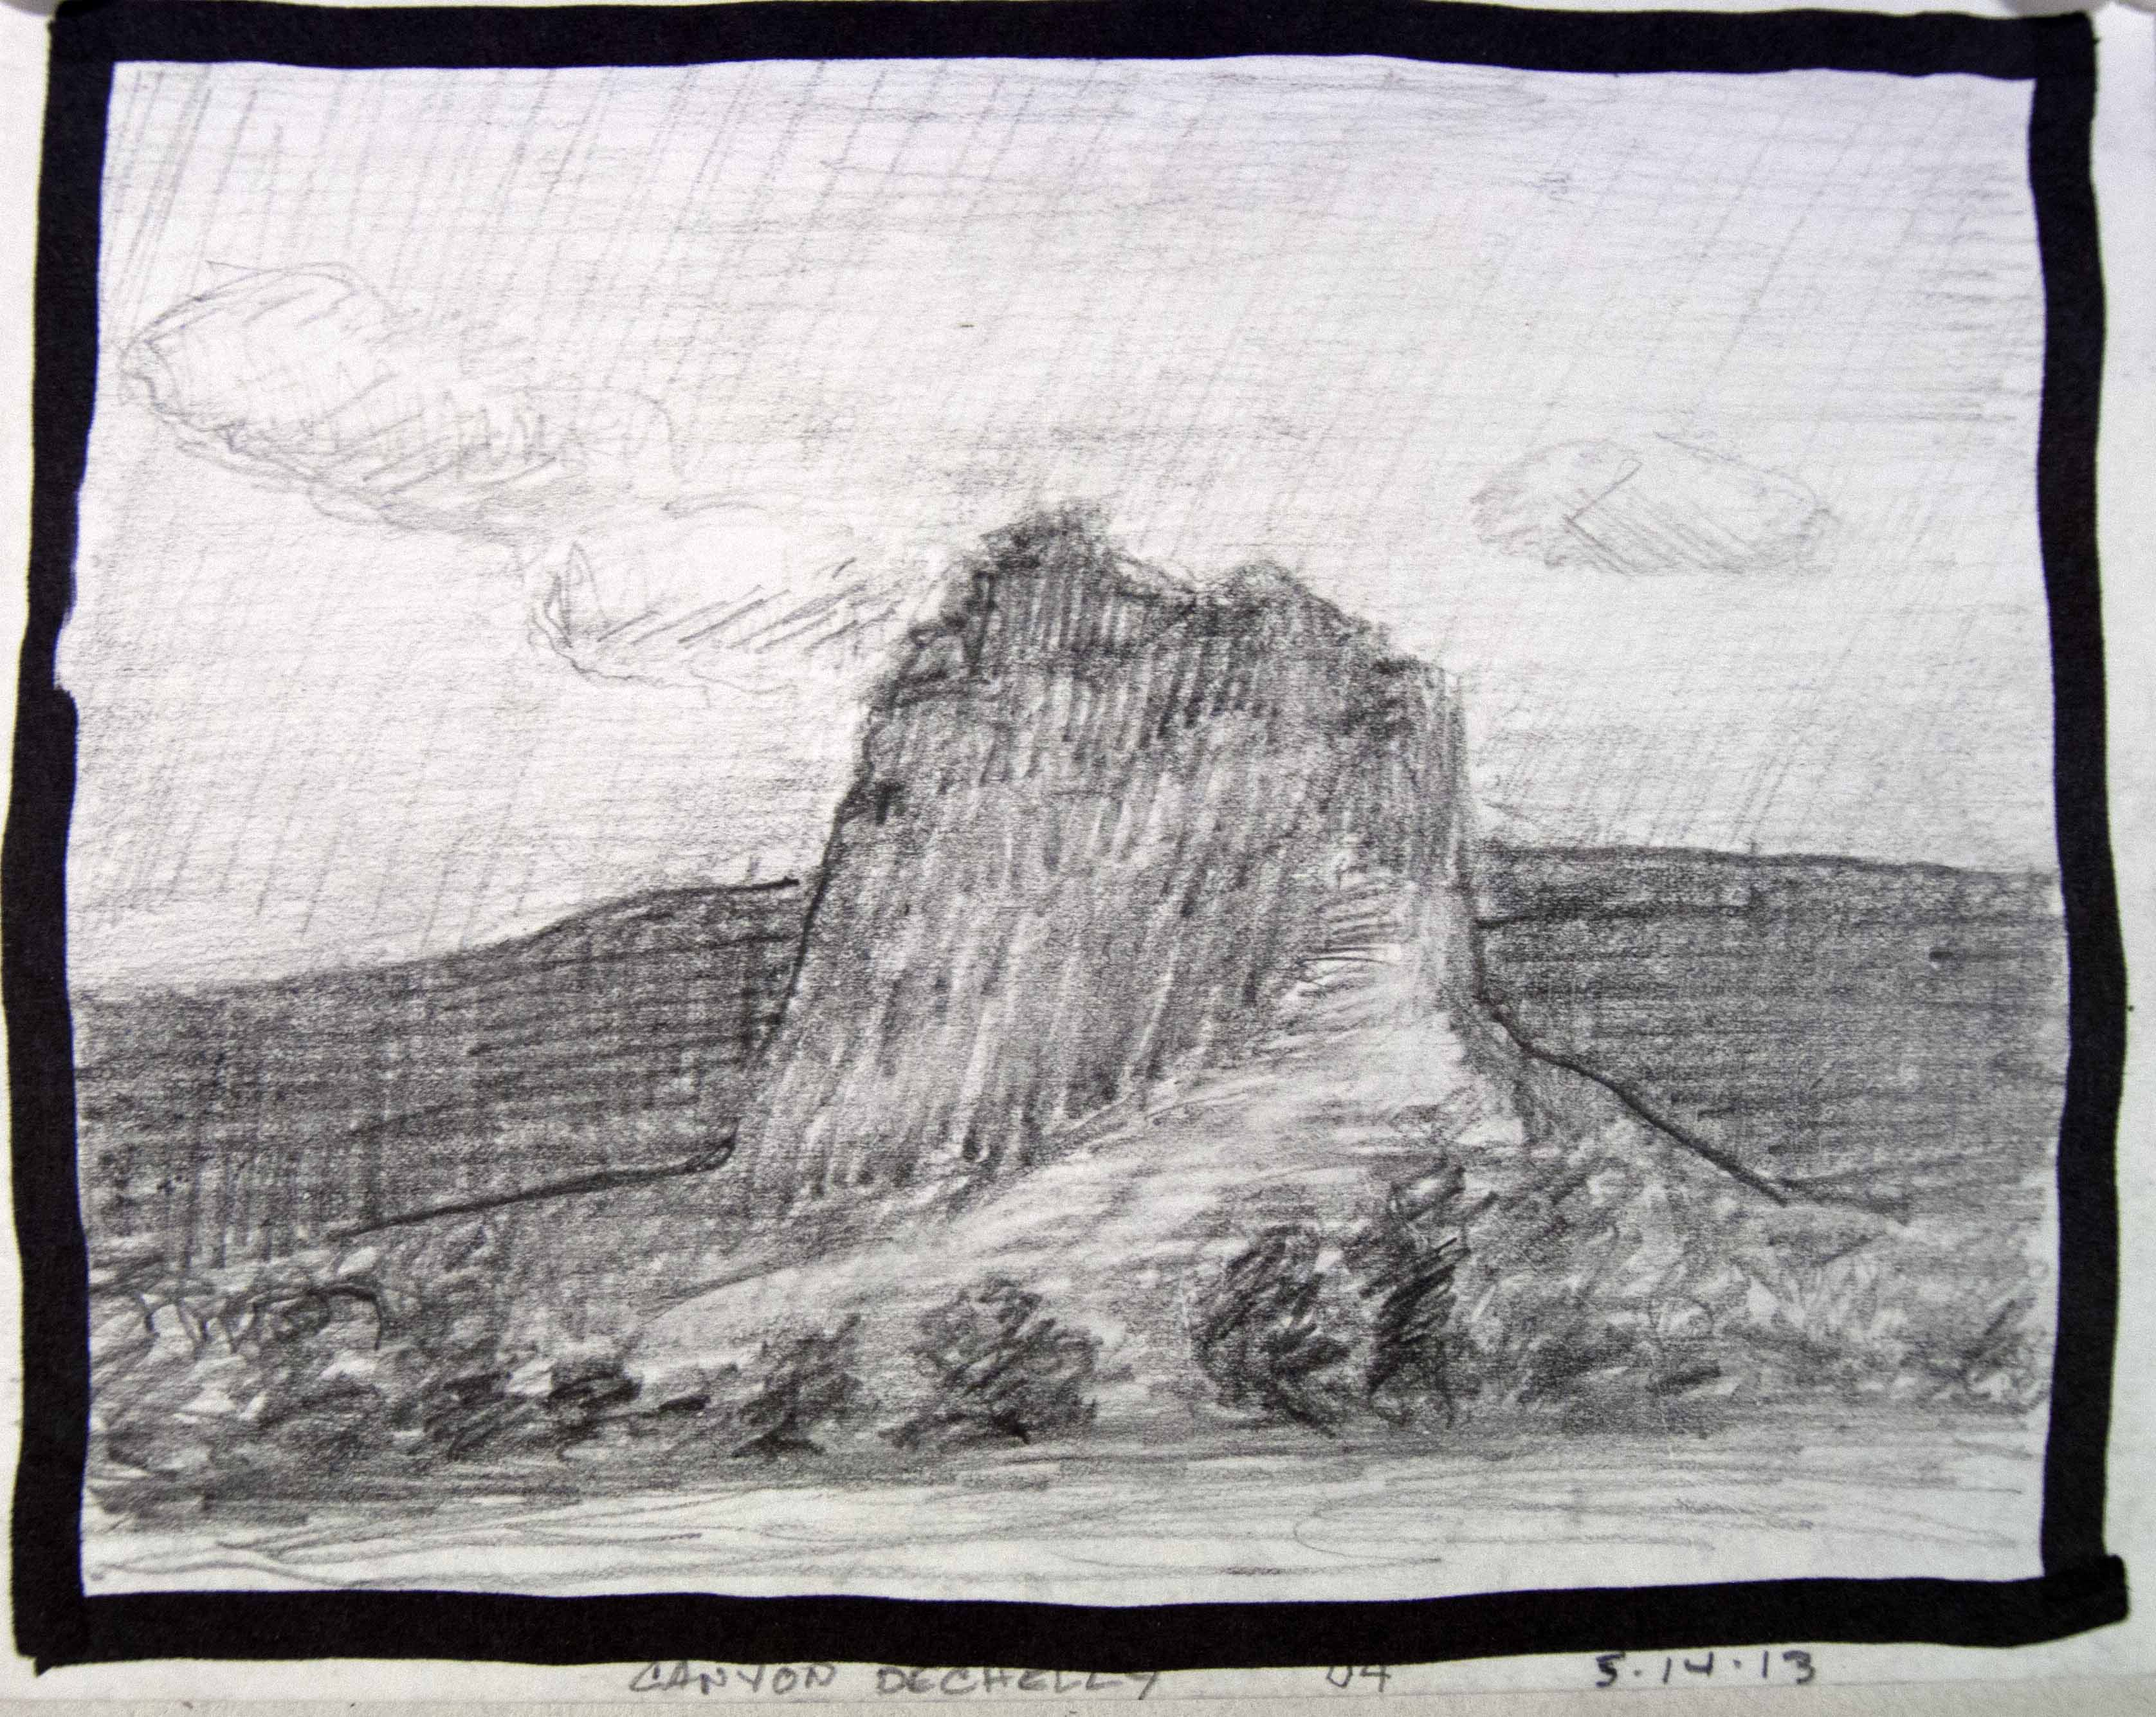 CanyonDeChelly04pencil_paper4